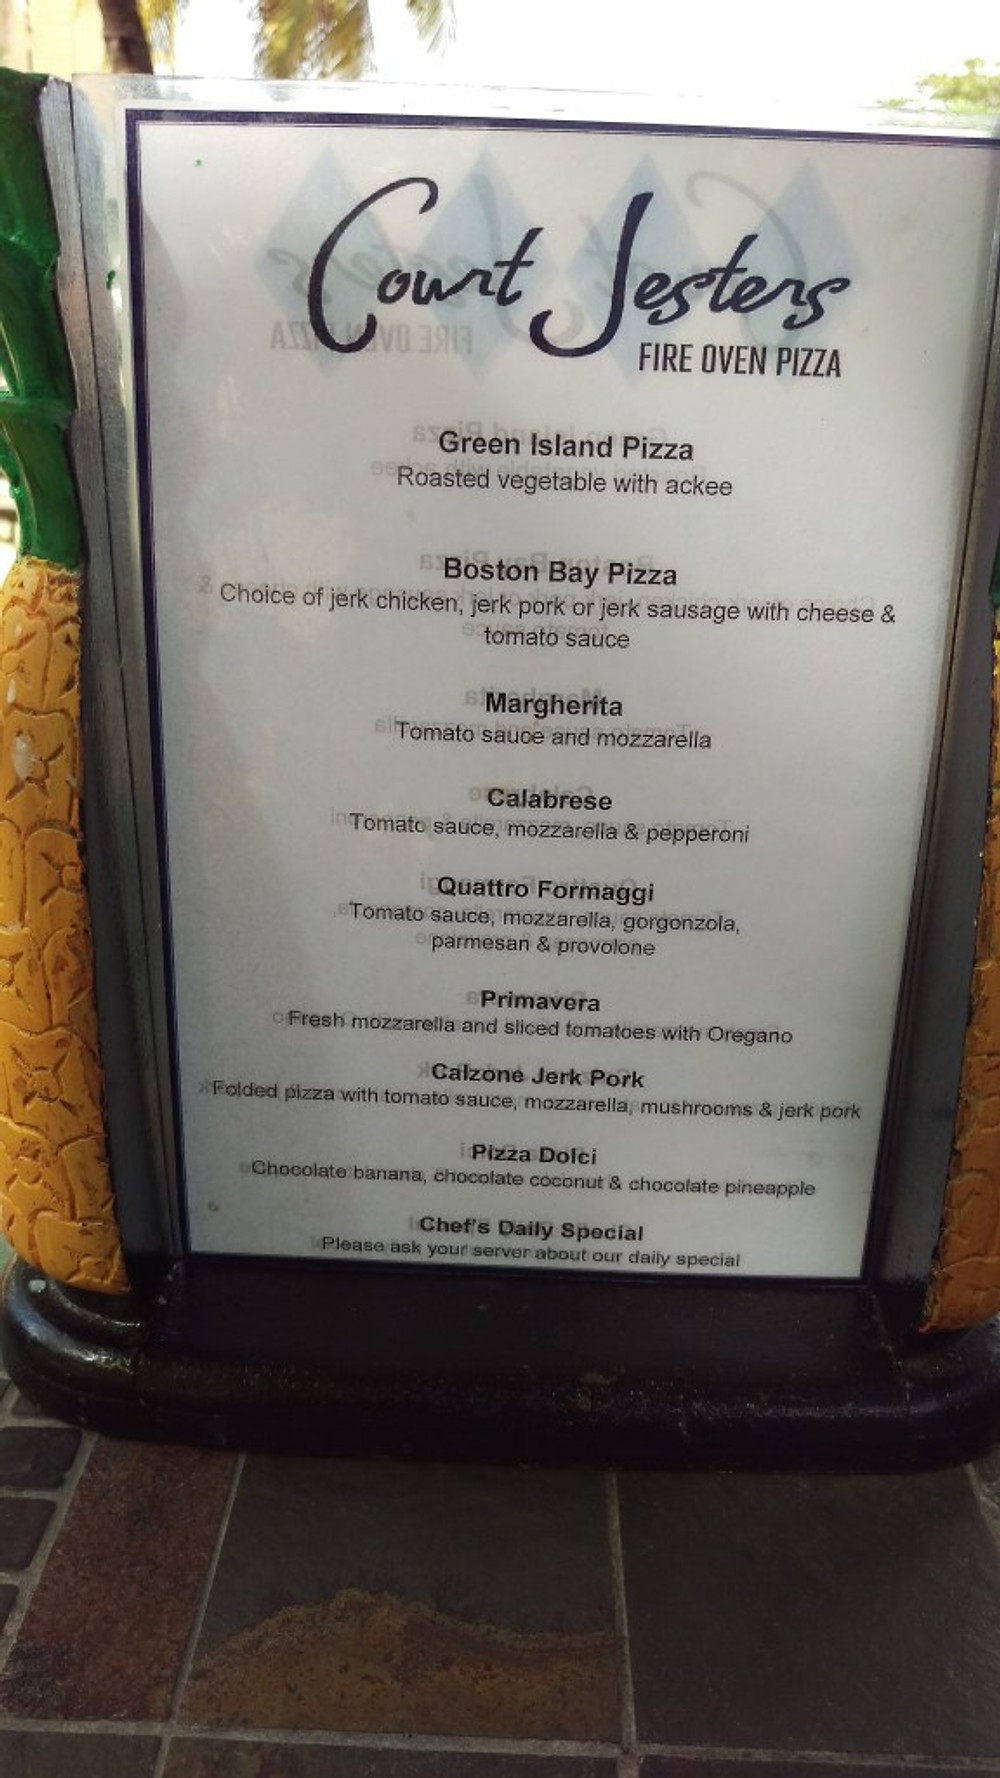 A picture of the menu at the Court Jester's pizza restaurant.